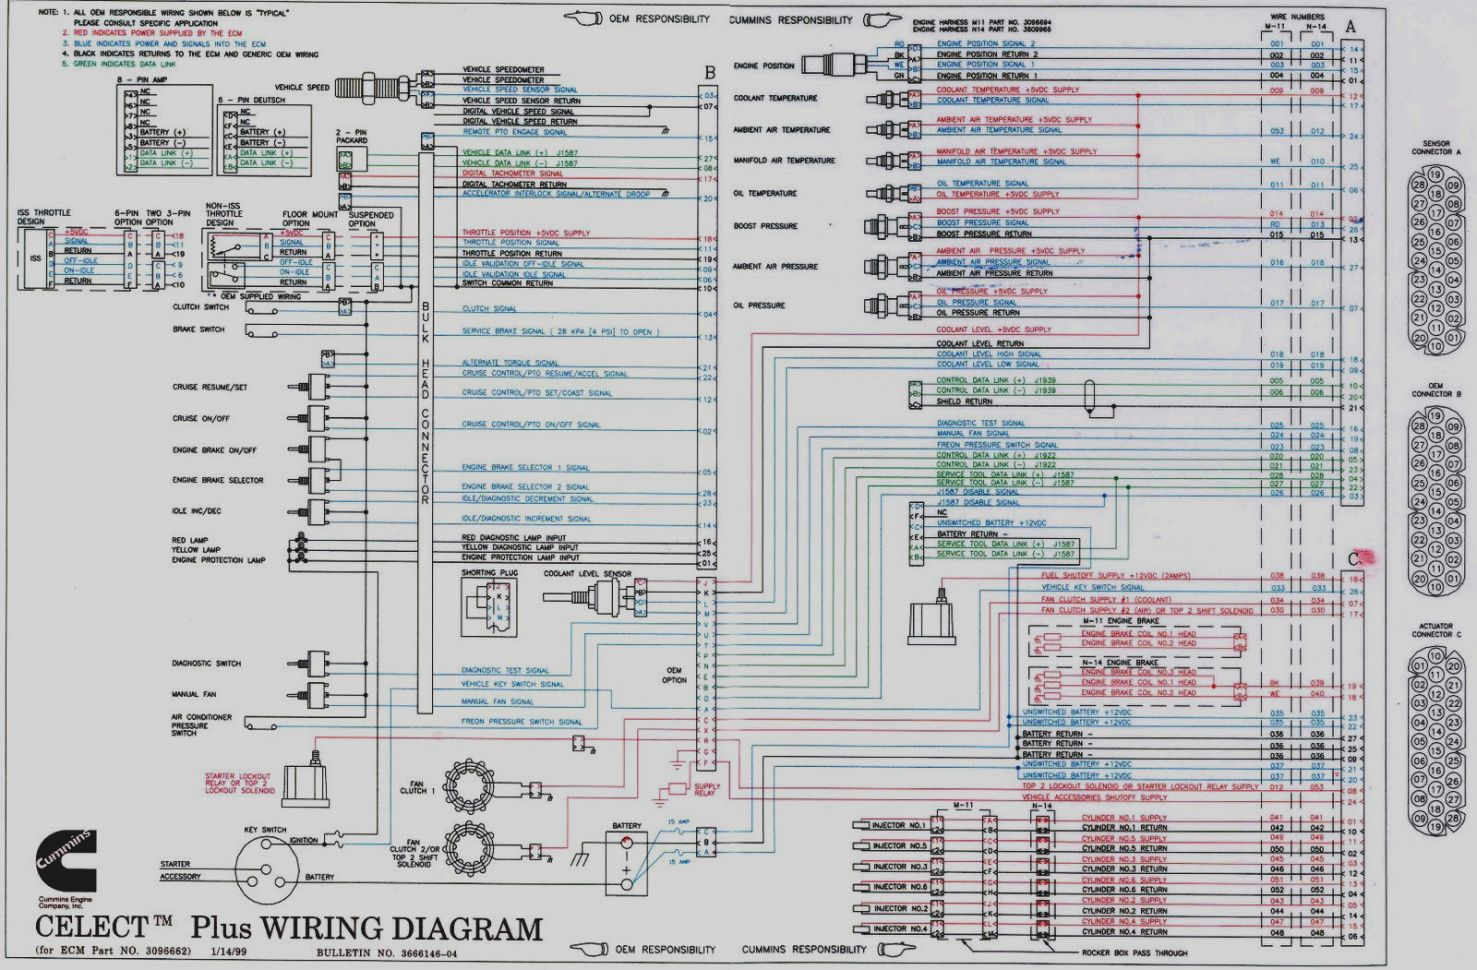 small resolution of awesome cummins n14 celect plus wiring diagram freightliner columbia cummins n14 celect wiring diagram awesome cummins